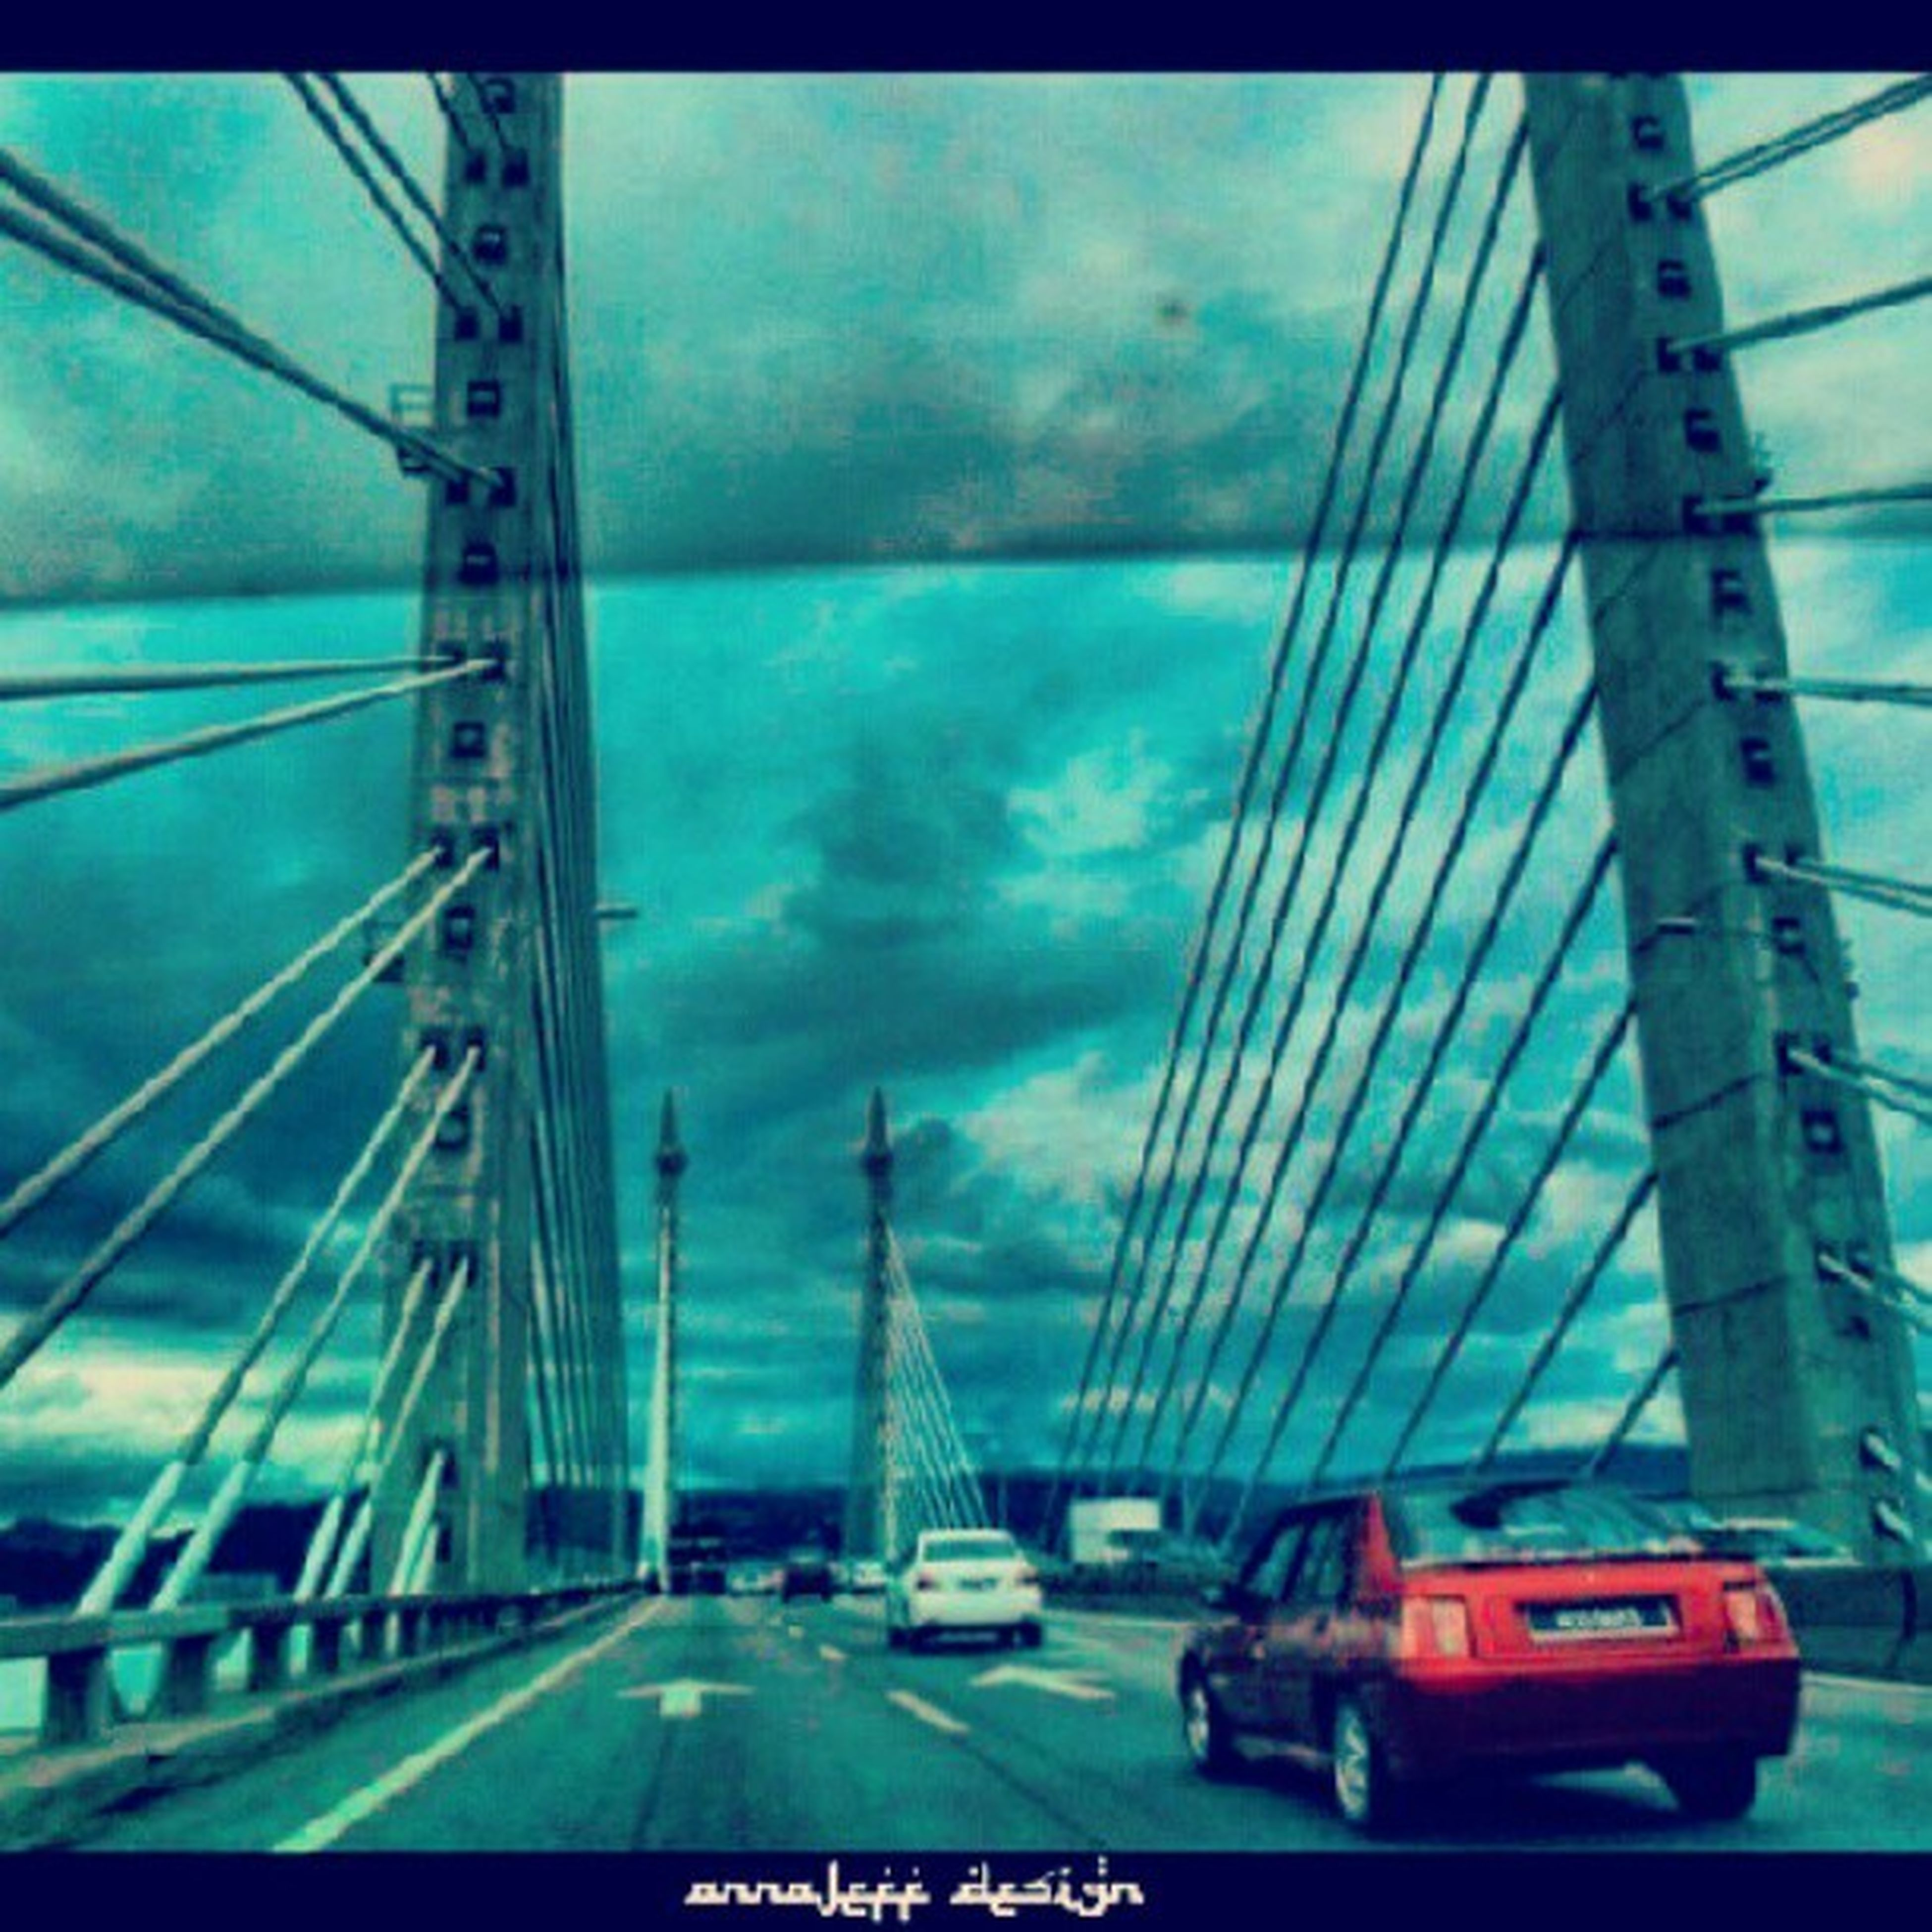 transportation, bridge - man made structure, mode of transport, architecture, connection, car, built structure, engineering, land vehicle, sky, road, travel, city, the way forward, bridge, suspension bridge, cloud - sky, travel destinations, diminishing perspective, highway